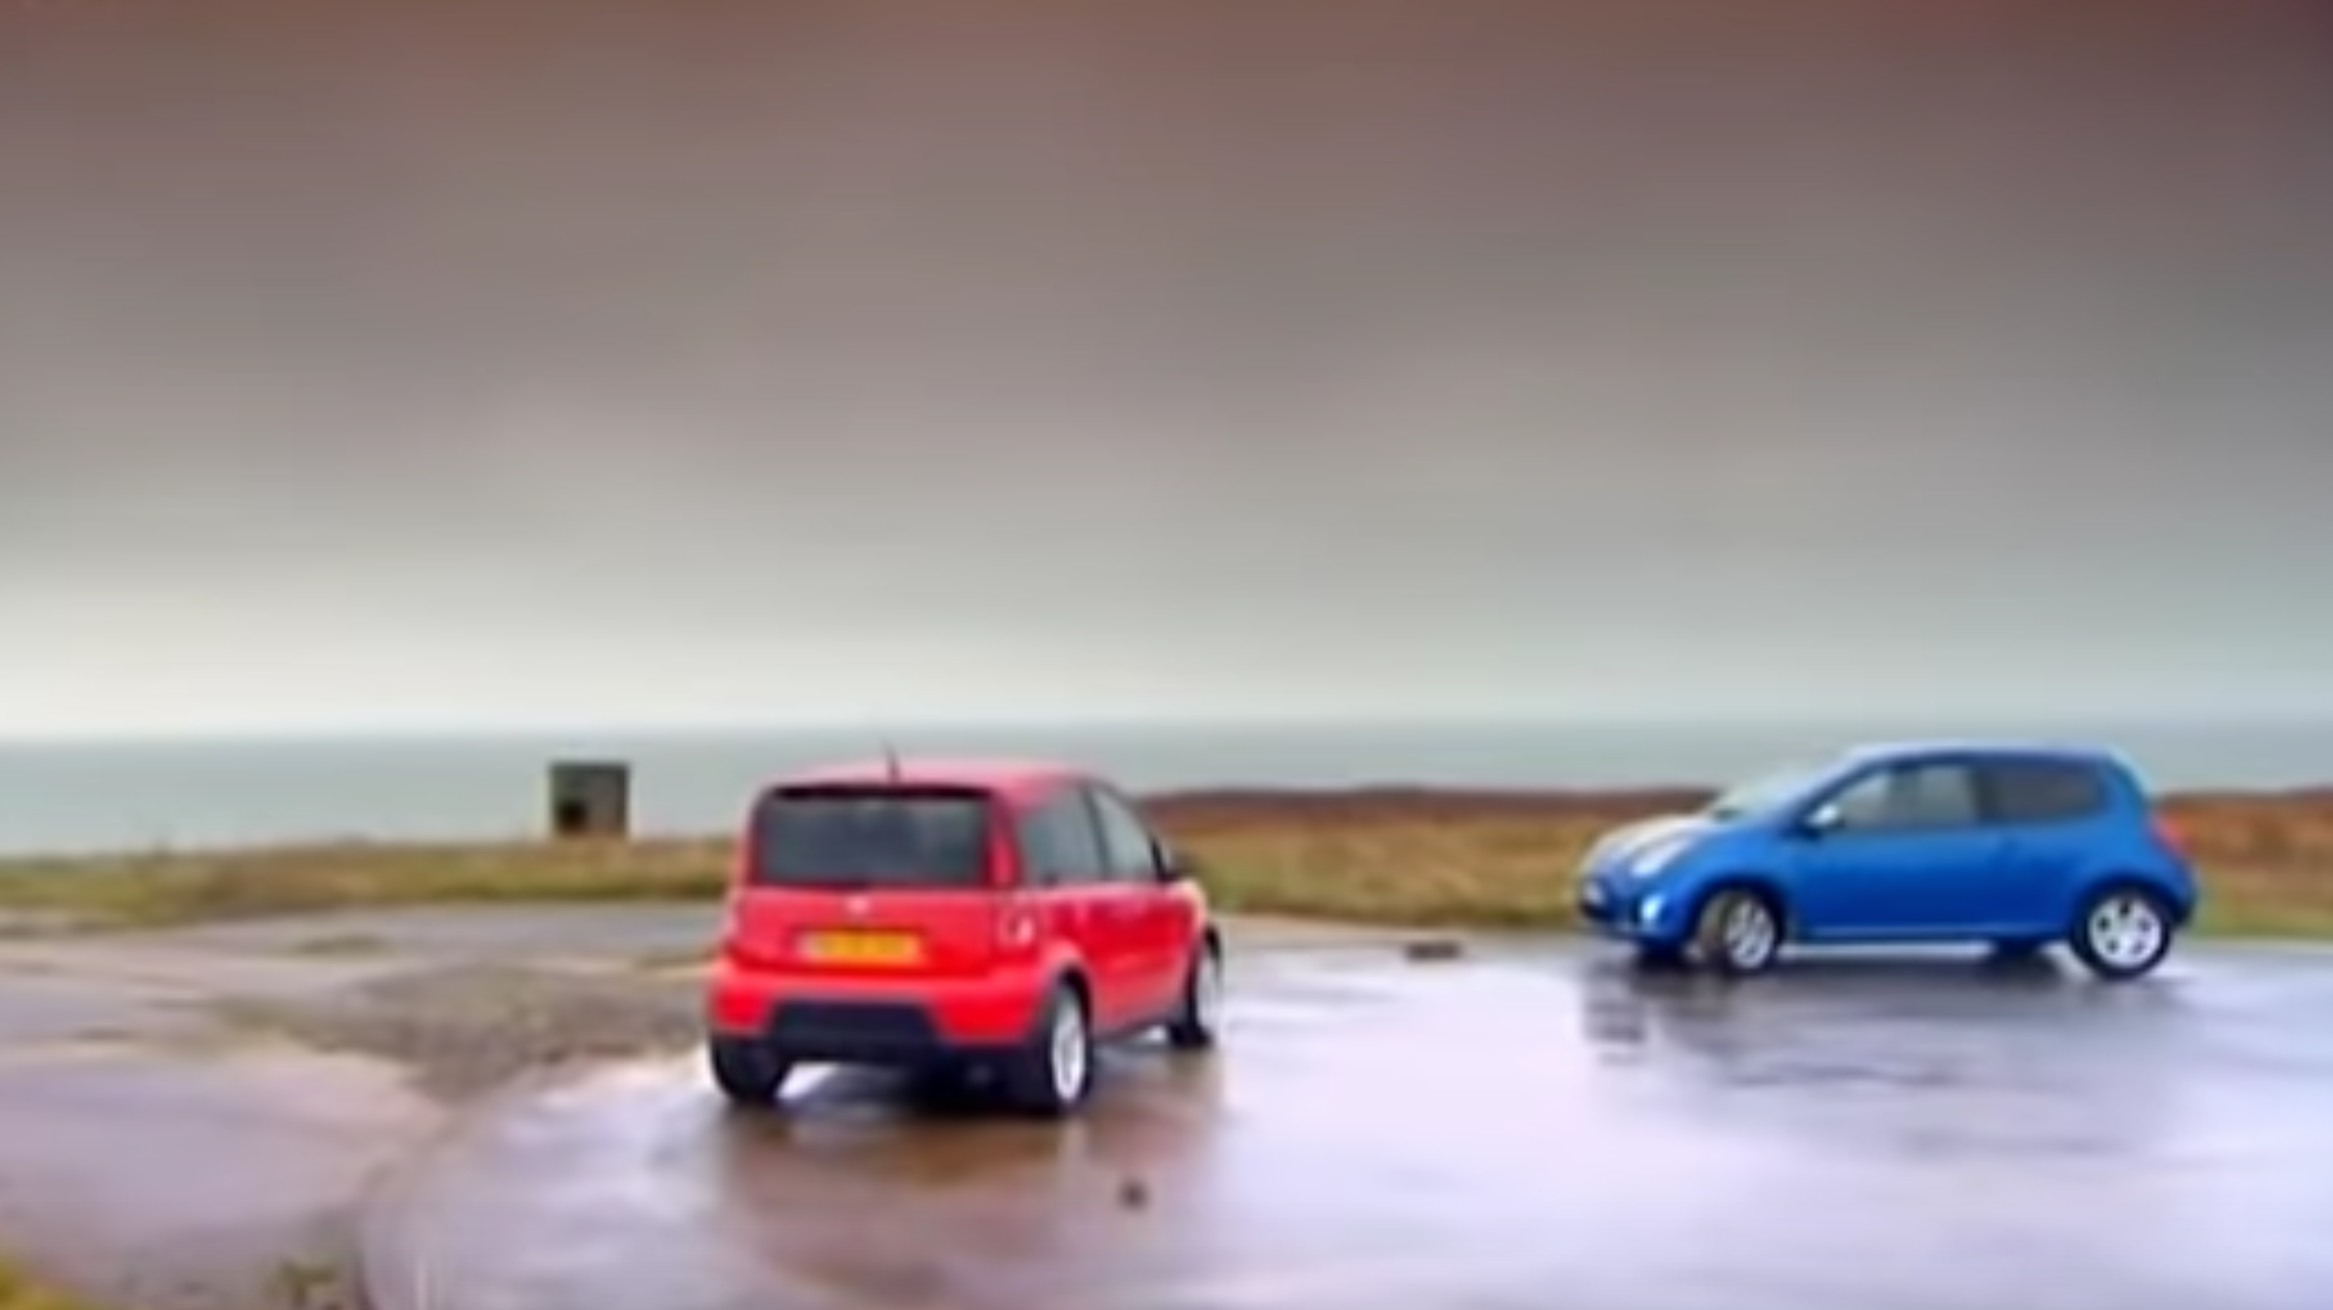 Watch Two Low-Powered Late 2000s Hot Hatches Battle It Out On Fifth Gear